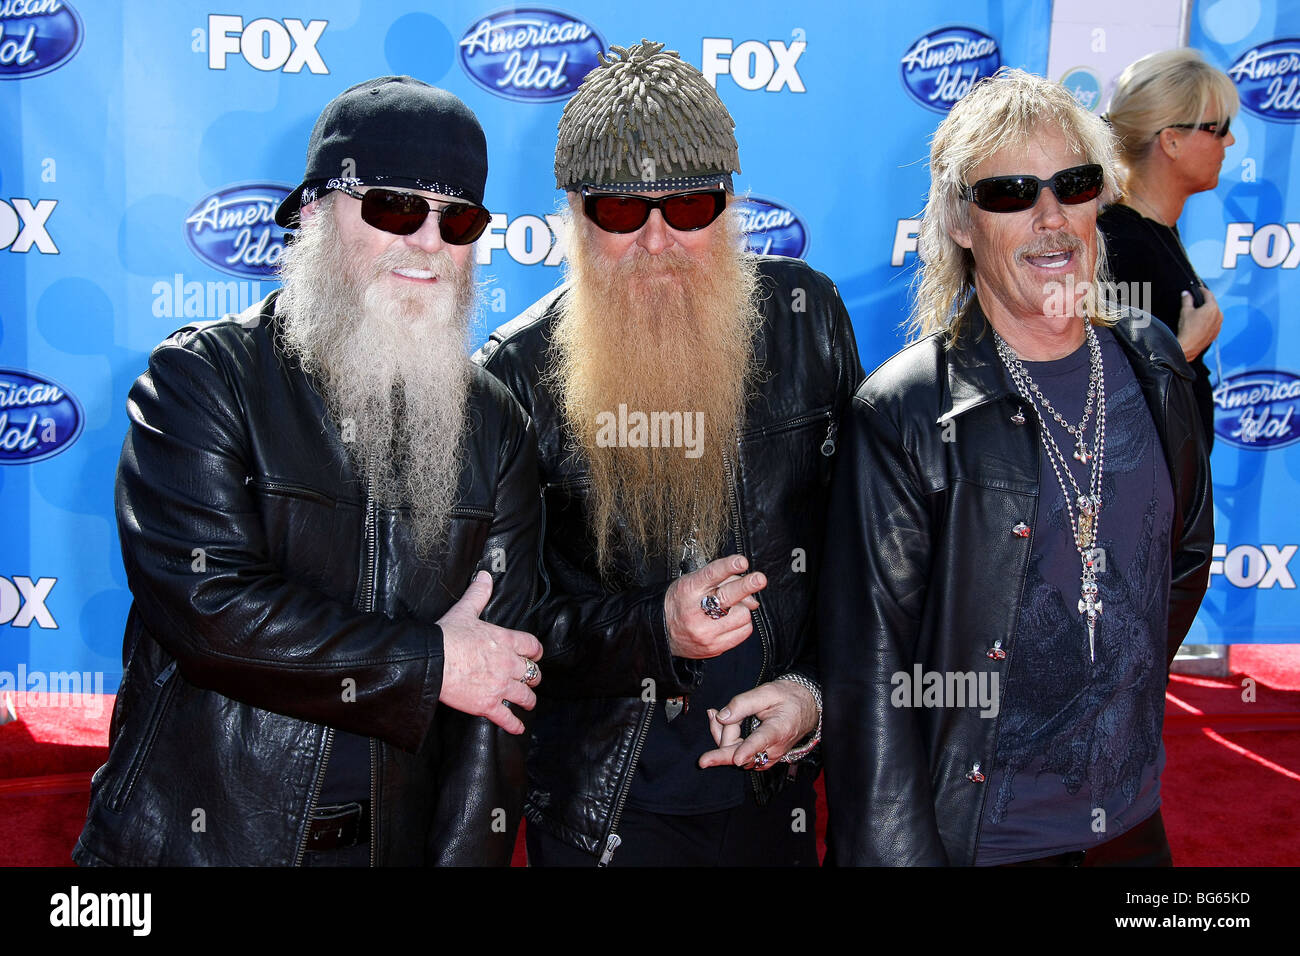 ZZ TOP AMERICAN IDOL GRAND FINALE 2008 DAY 2 NOKIA THEATRE DOWNTOWN LOS ANGELES USA 21 May 2008 - Stock Image